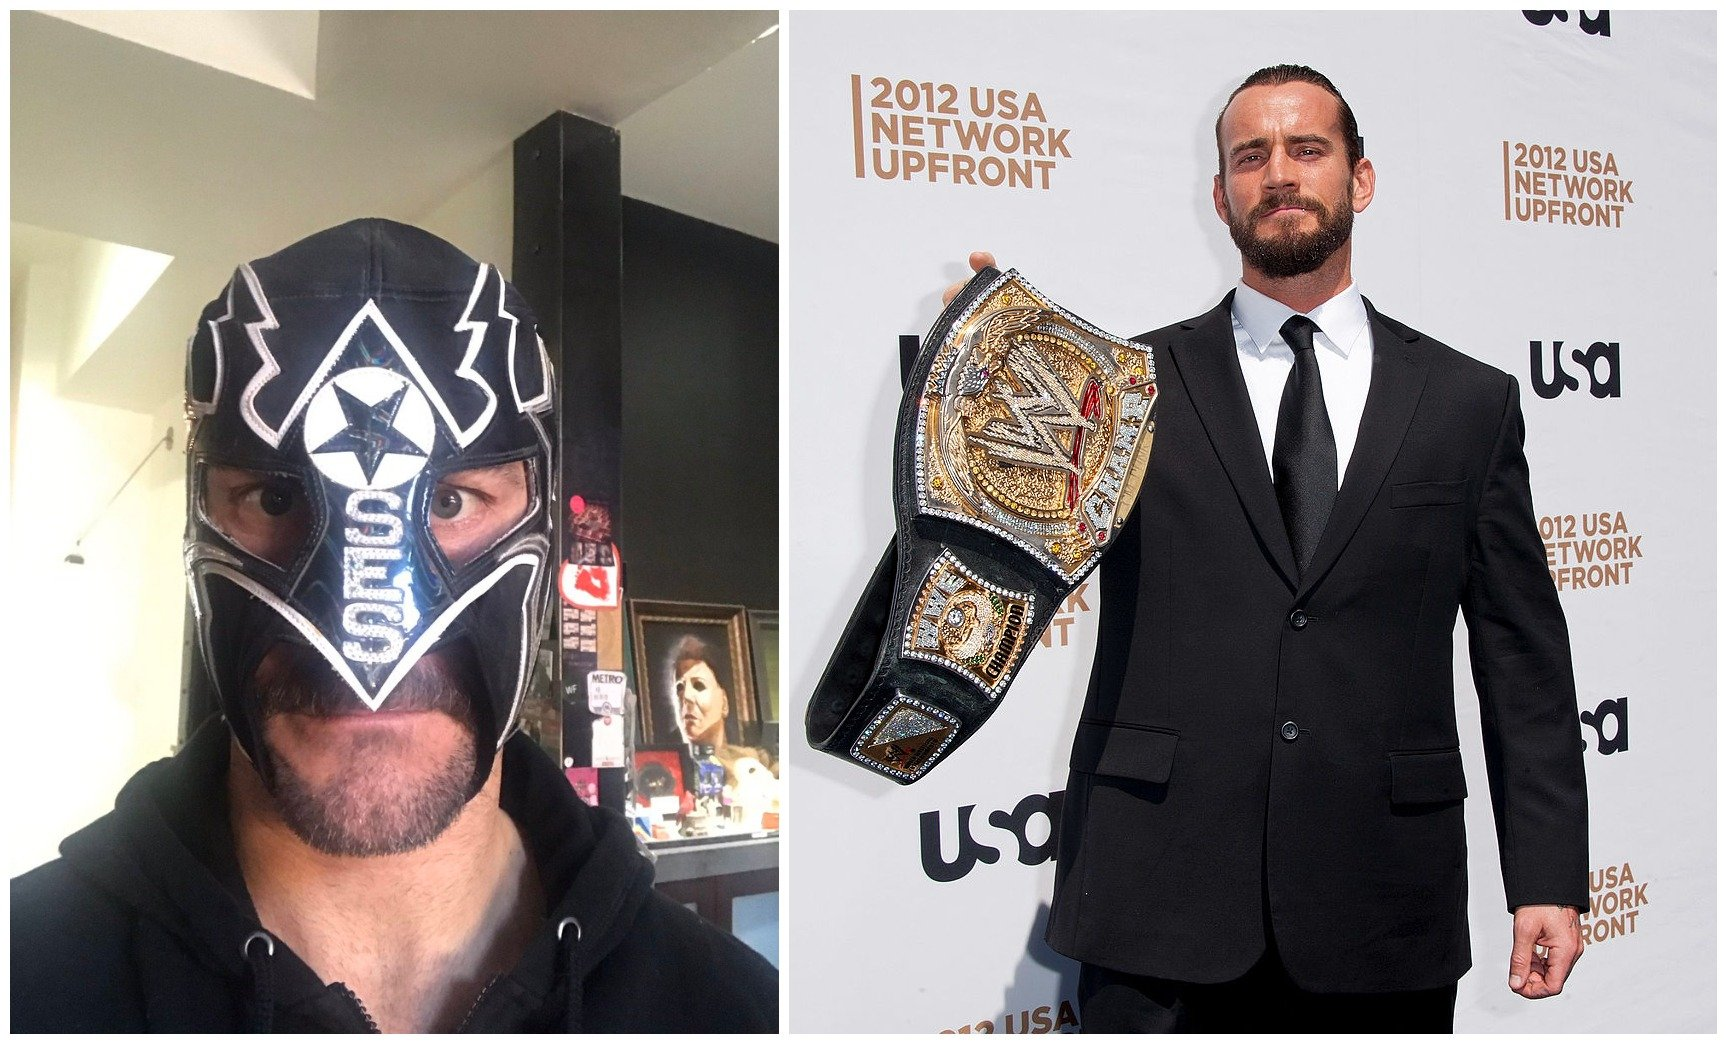 Image Credits: Twitter/CM Punk - Getty Images